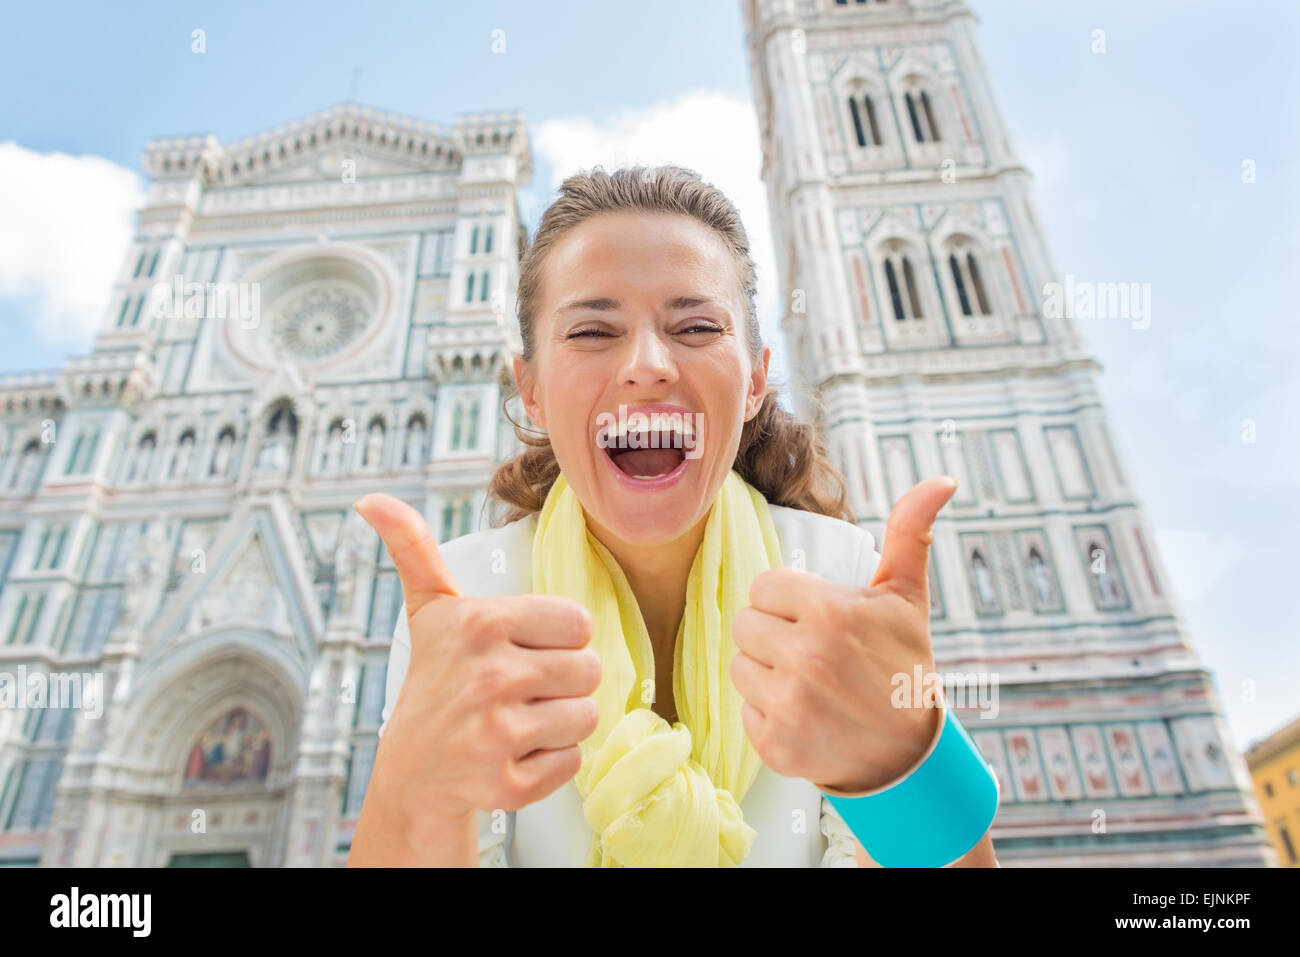 Happy young woman showing thumbs up in front of duomo in florence, italy Stock Photo